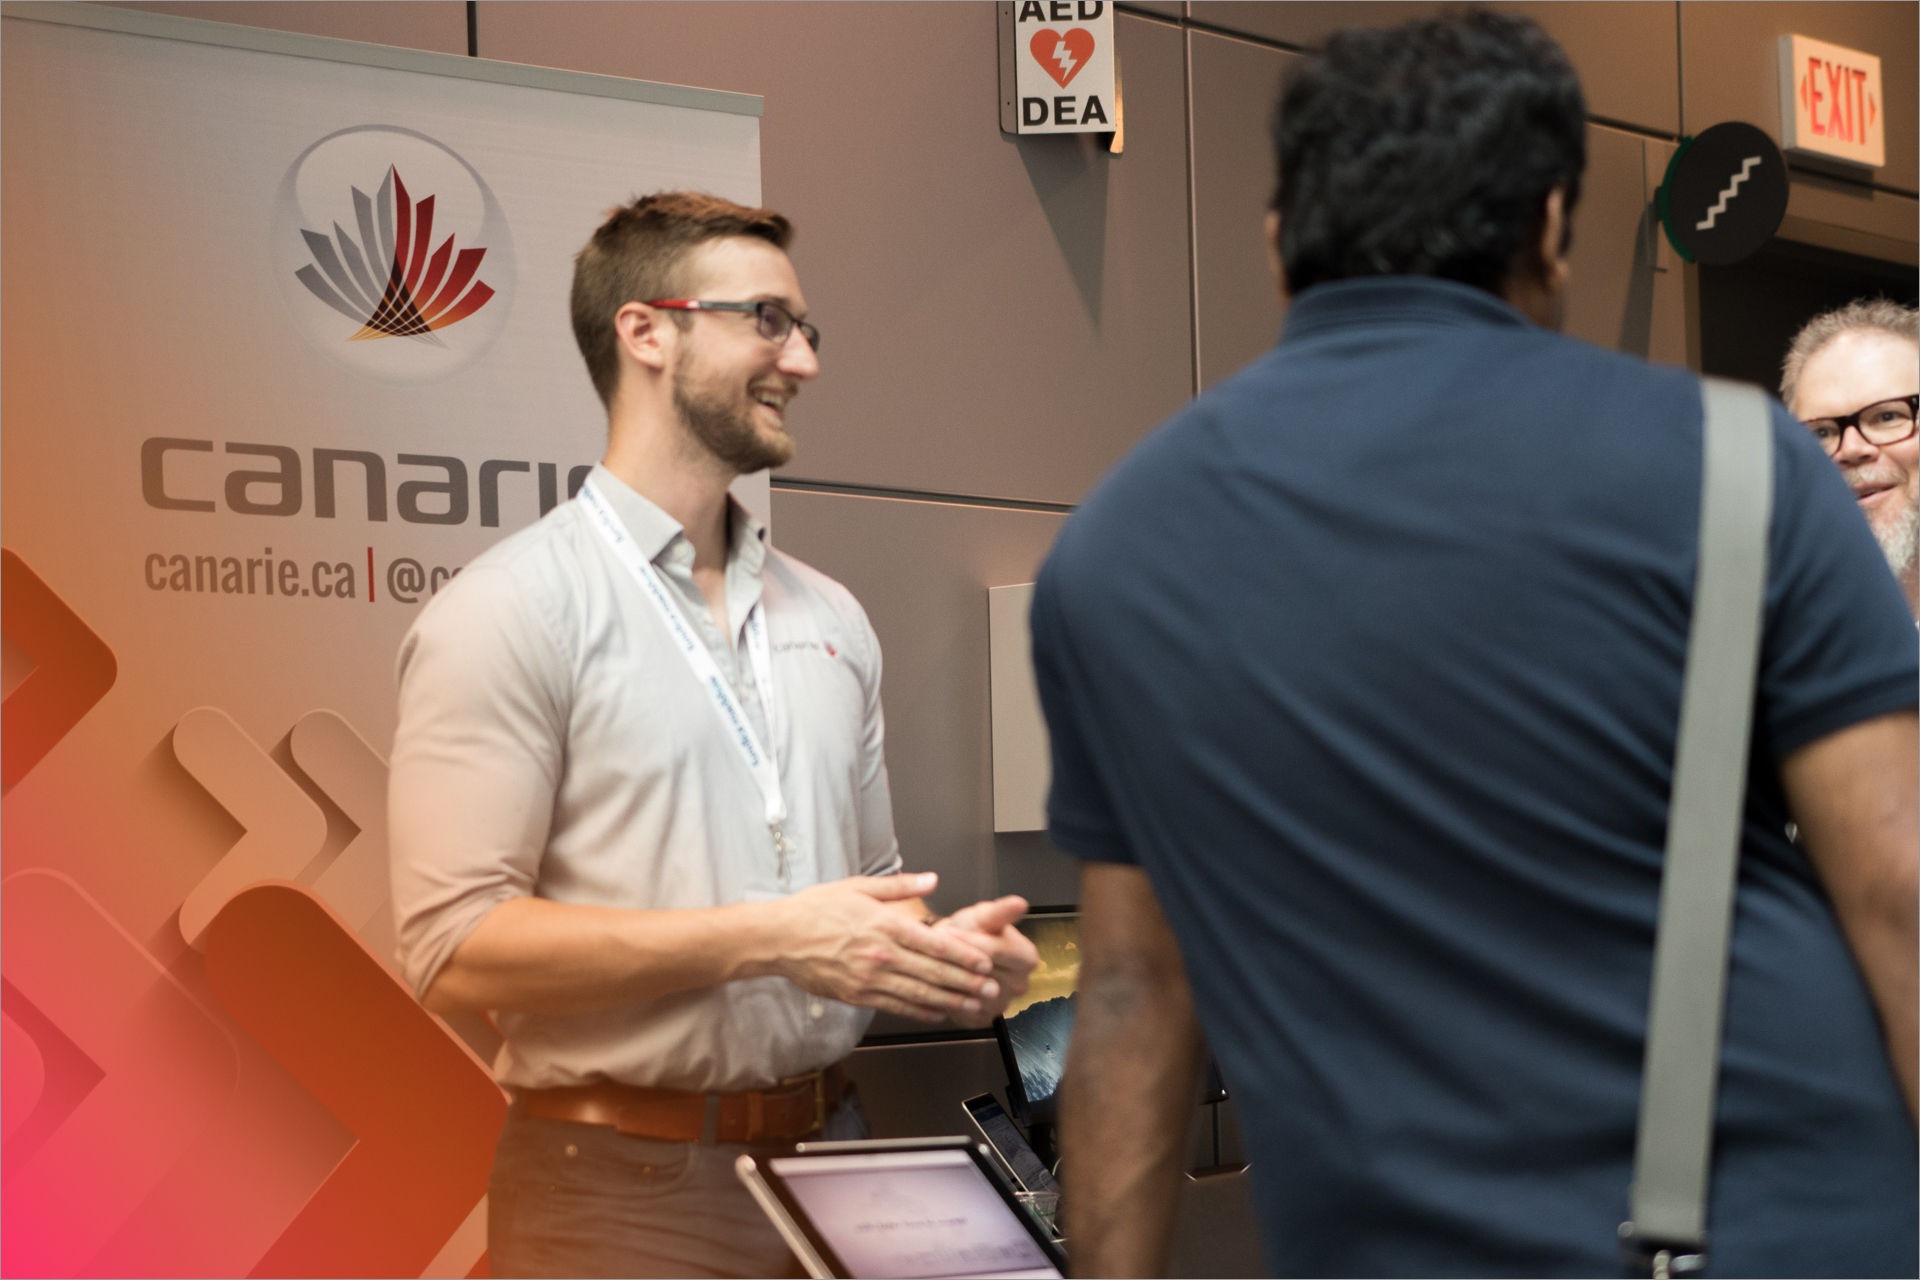 Join Our Journey Across Canada - Our coast-to-coast events bring national brand exposure as well as exciting opportunities to support Canada's brightest emerging entrepreneurs.